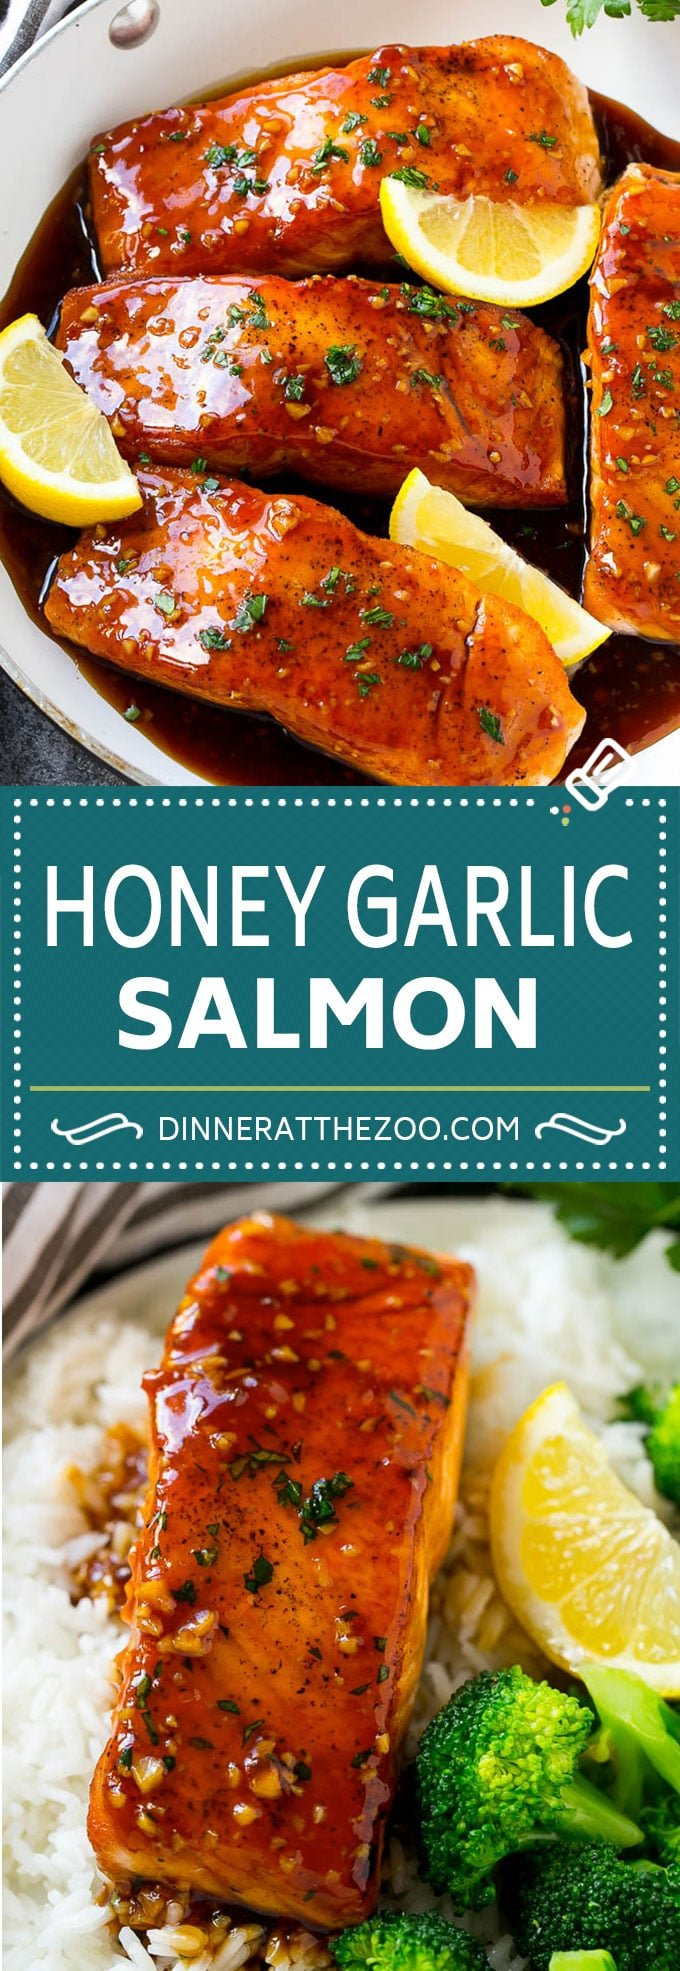 Honey Garlic Salmon Recipe | Asian Salmon Recipe | Healthy Salmon Recipe #salmon #fish #seafood #healthy #dinner #dinneratthezoo